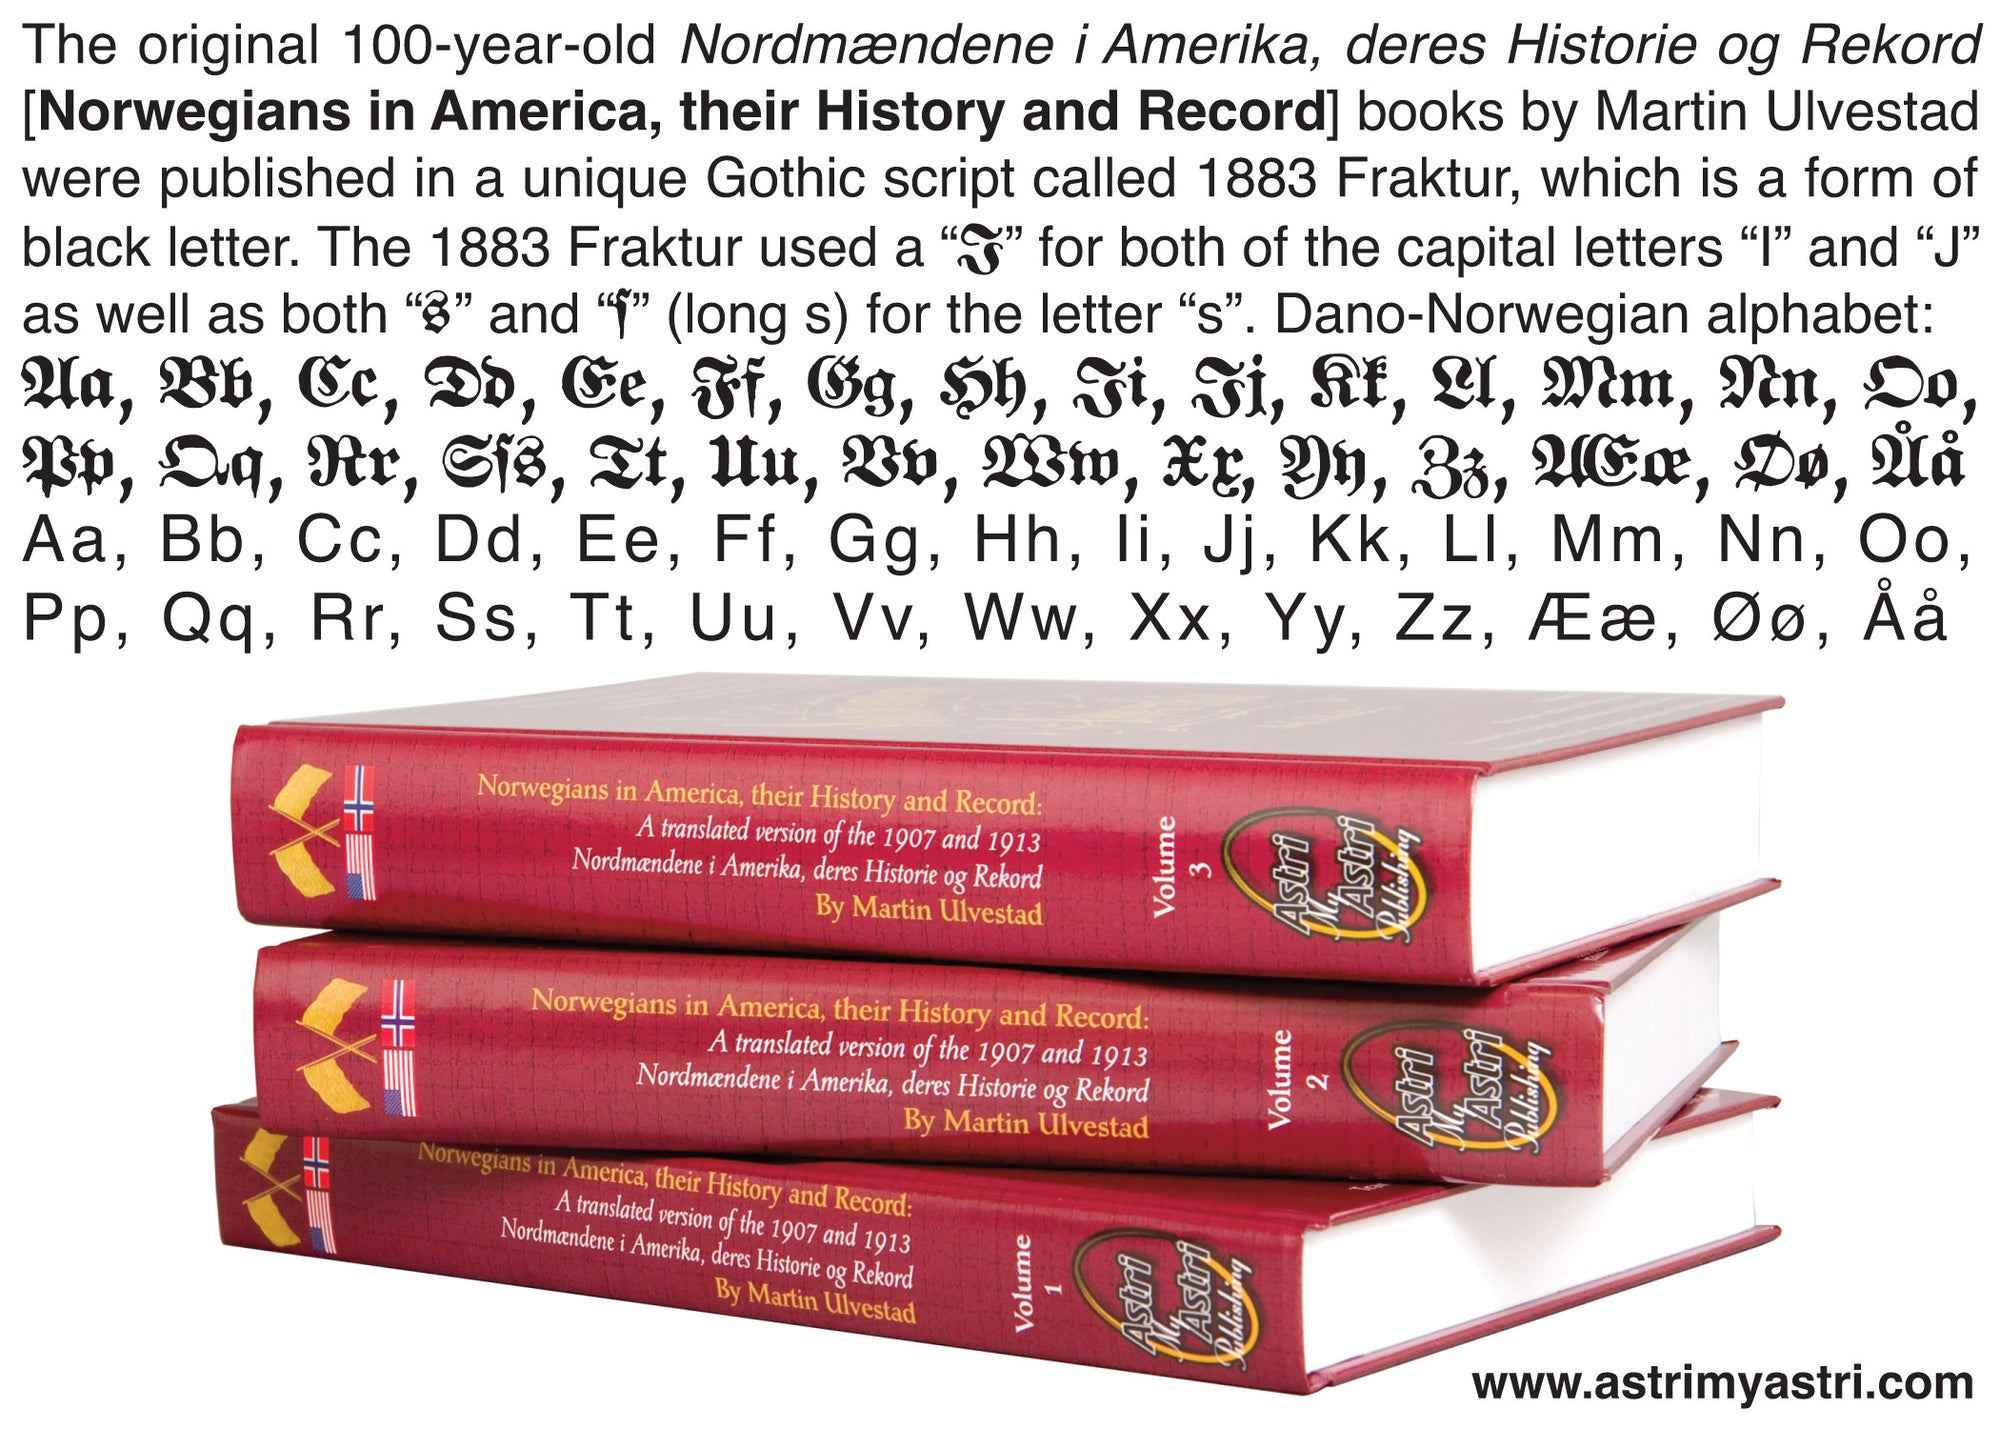 Norwegians in America (1825-1913) Gothic Script books now in ENGLISH!